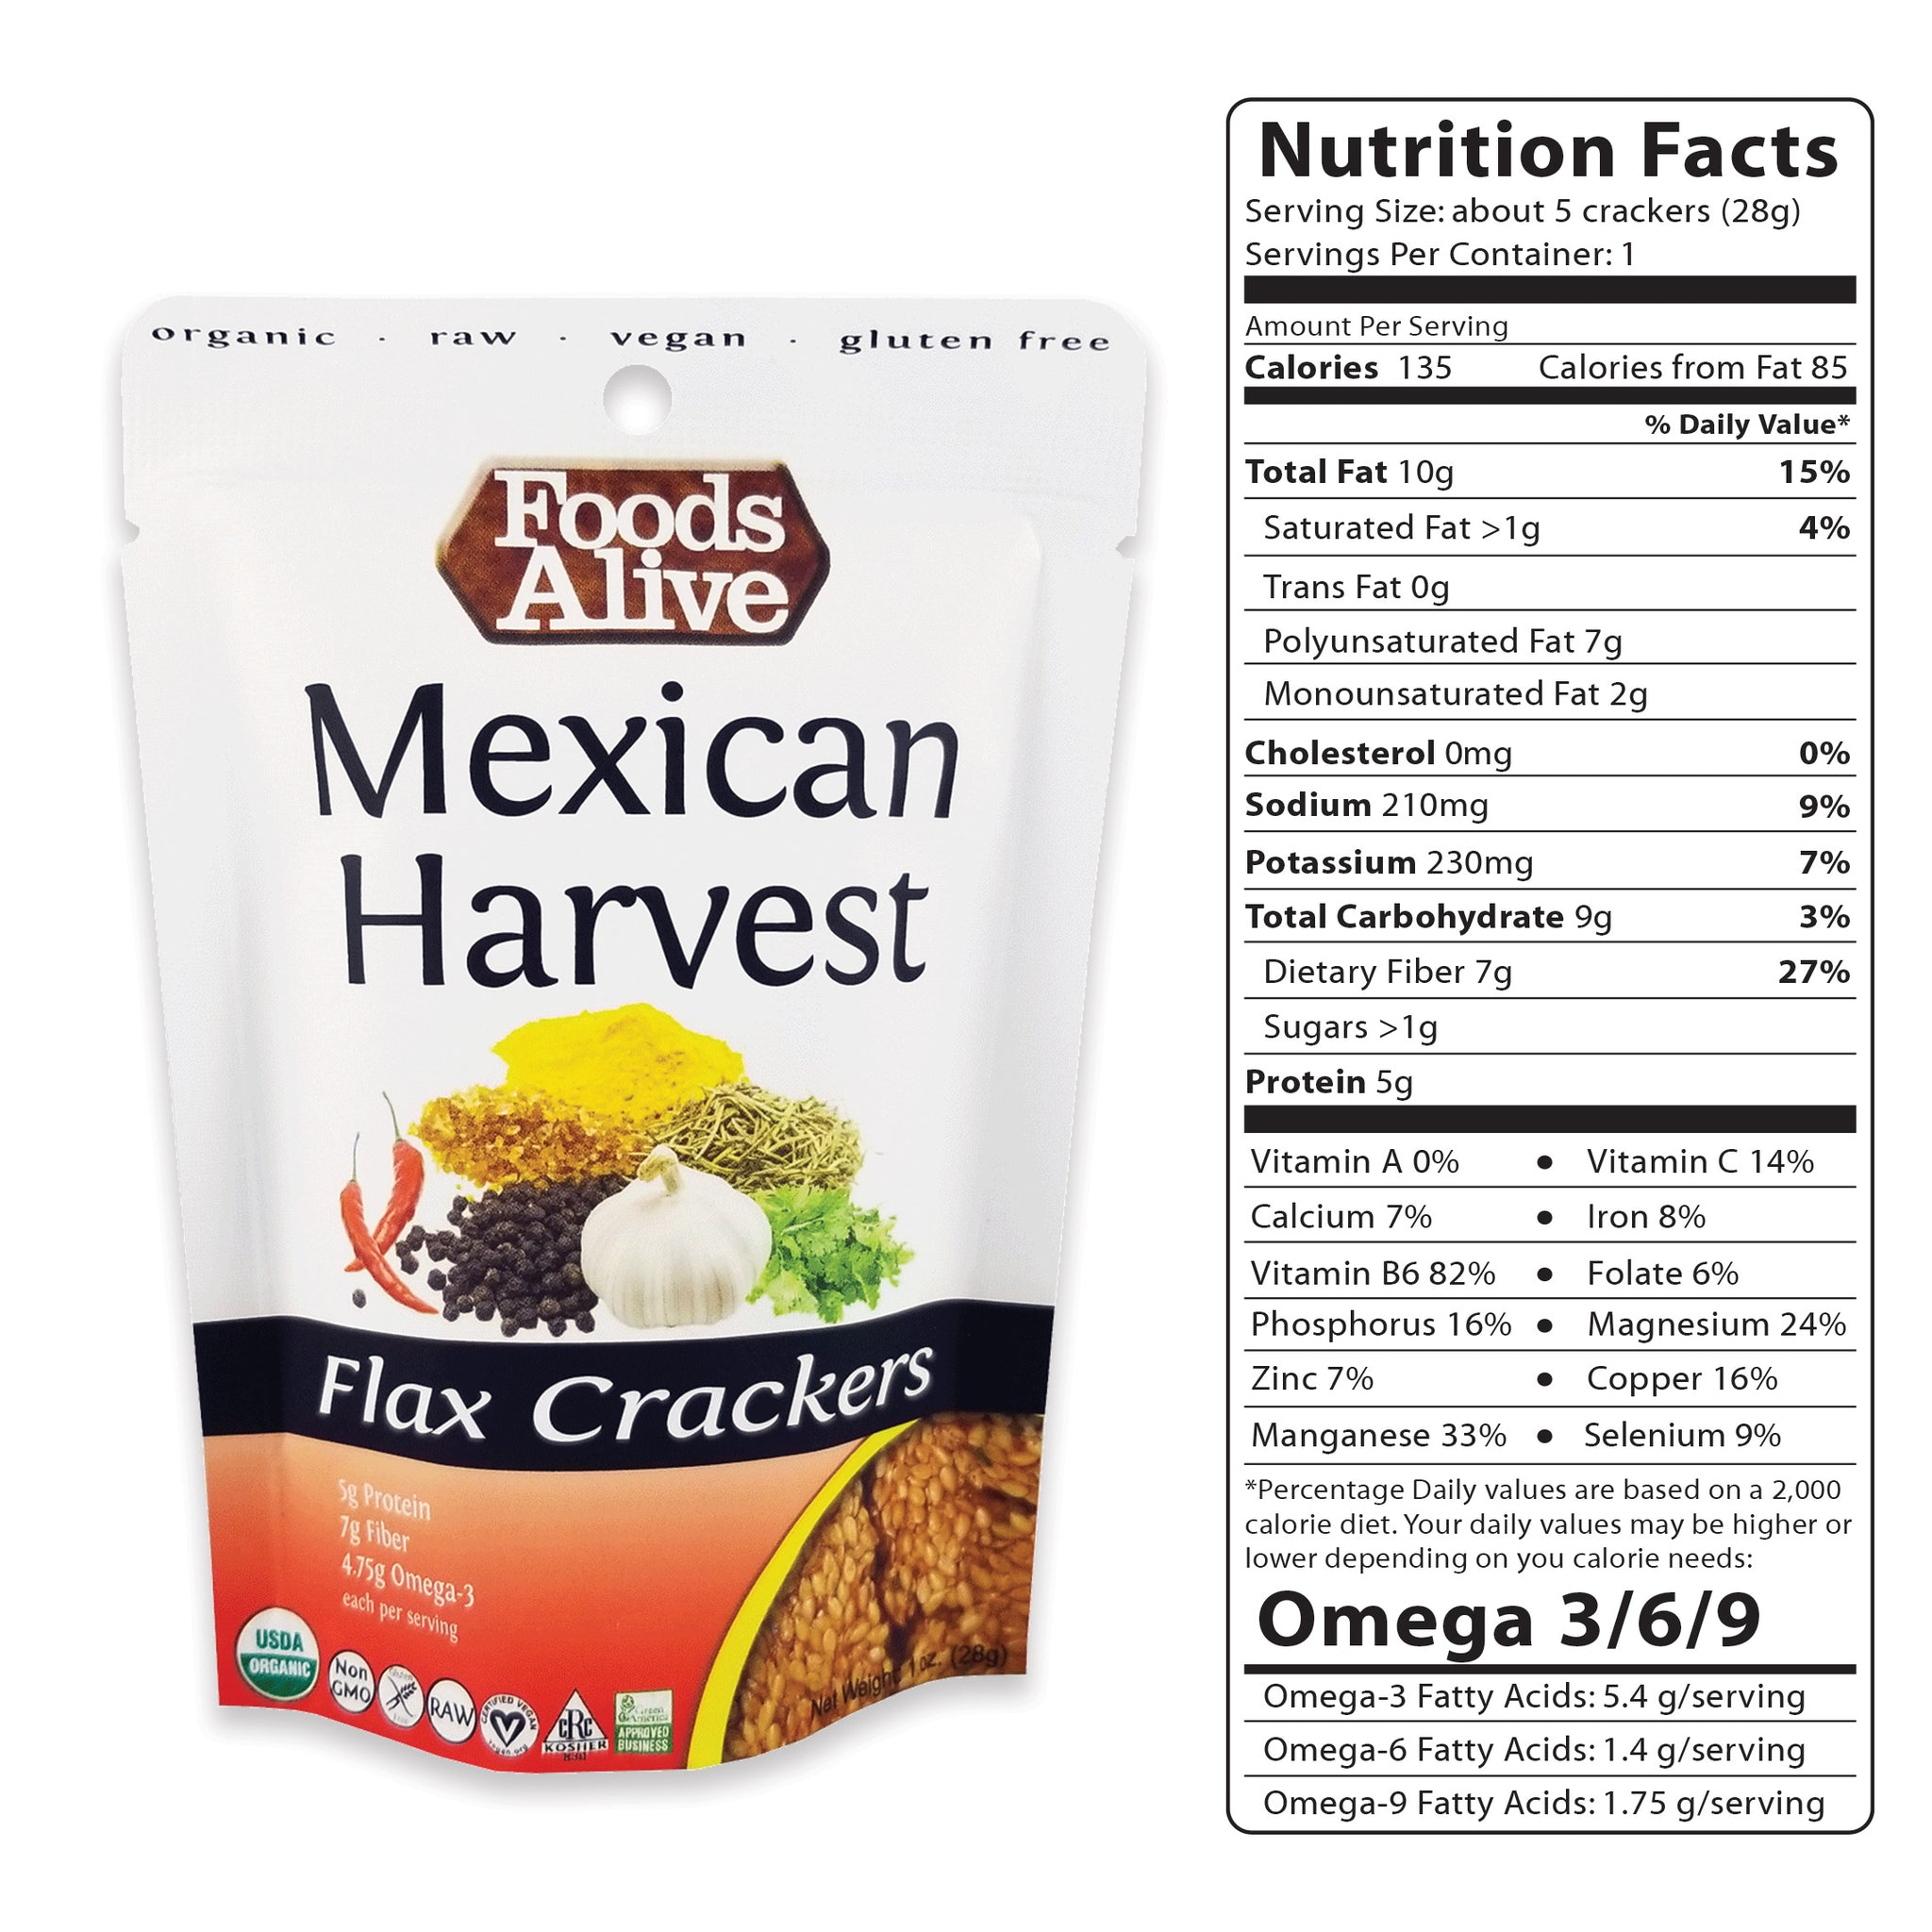 1oz Mexican Harvest Flax Crackers - Organic, Gluten Free, Non-GMO, Raw, Vegan, Kosher - Foods Alive